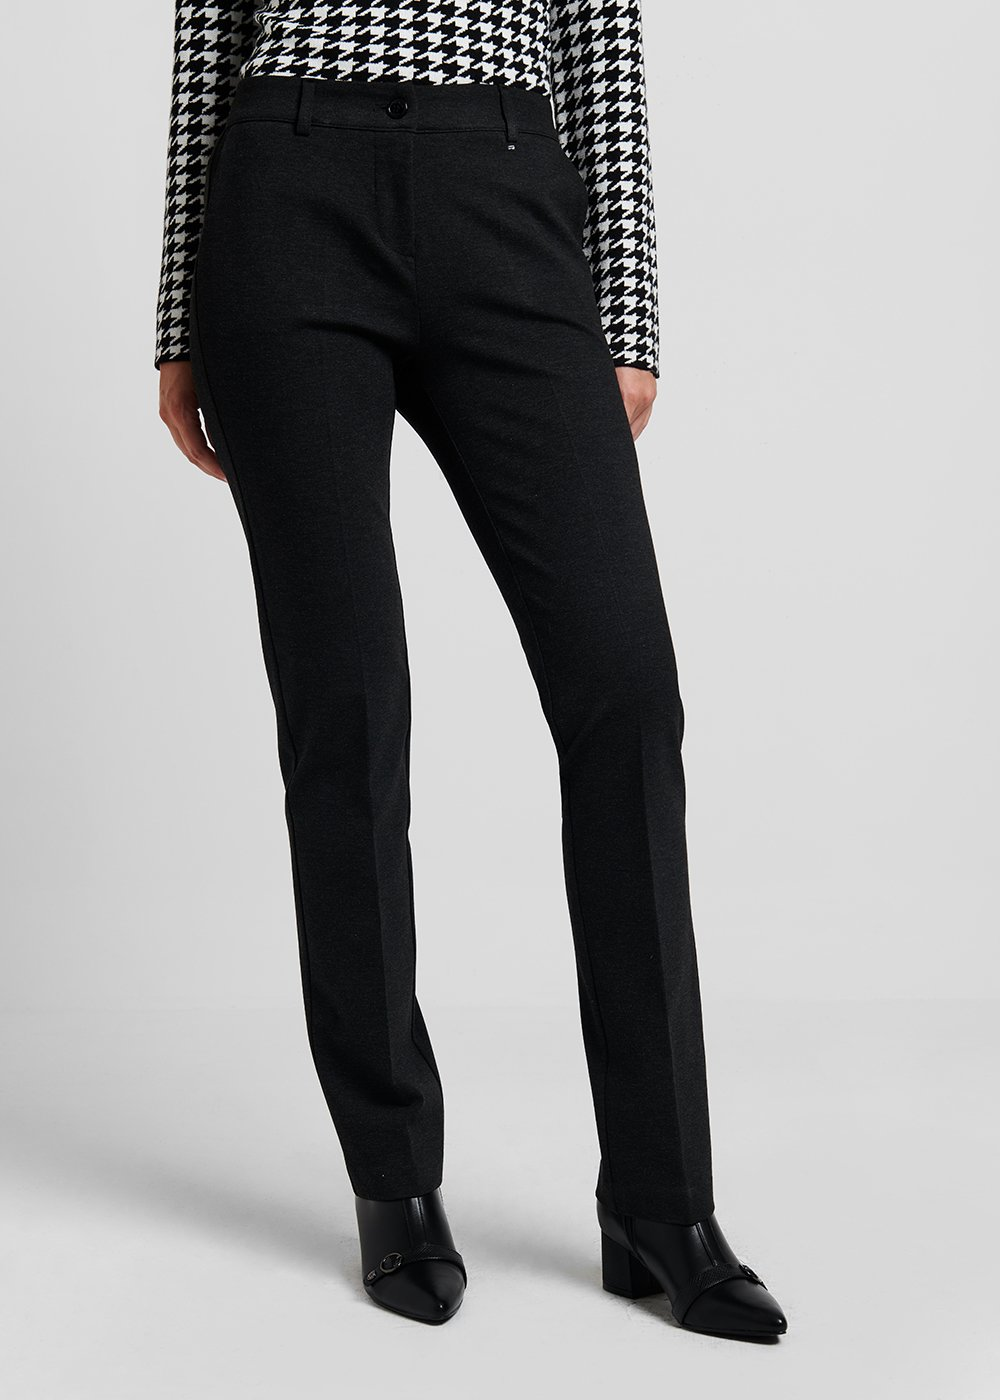 Clair trousers in milano stitch - Grey Melange - Woman